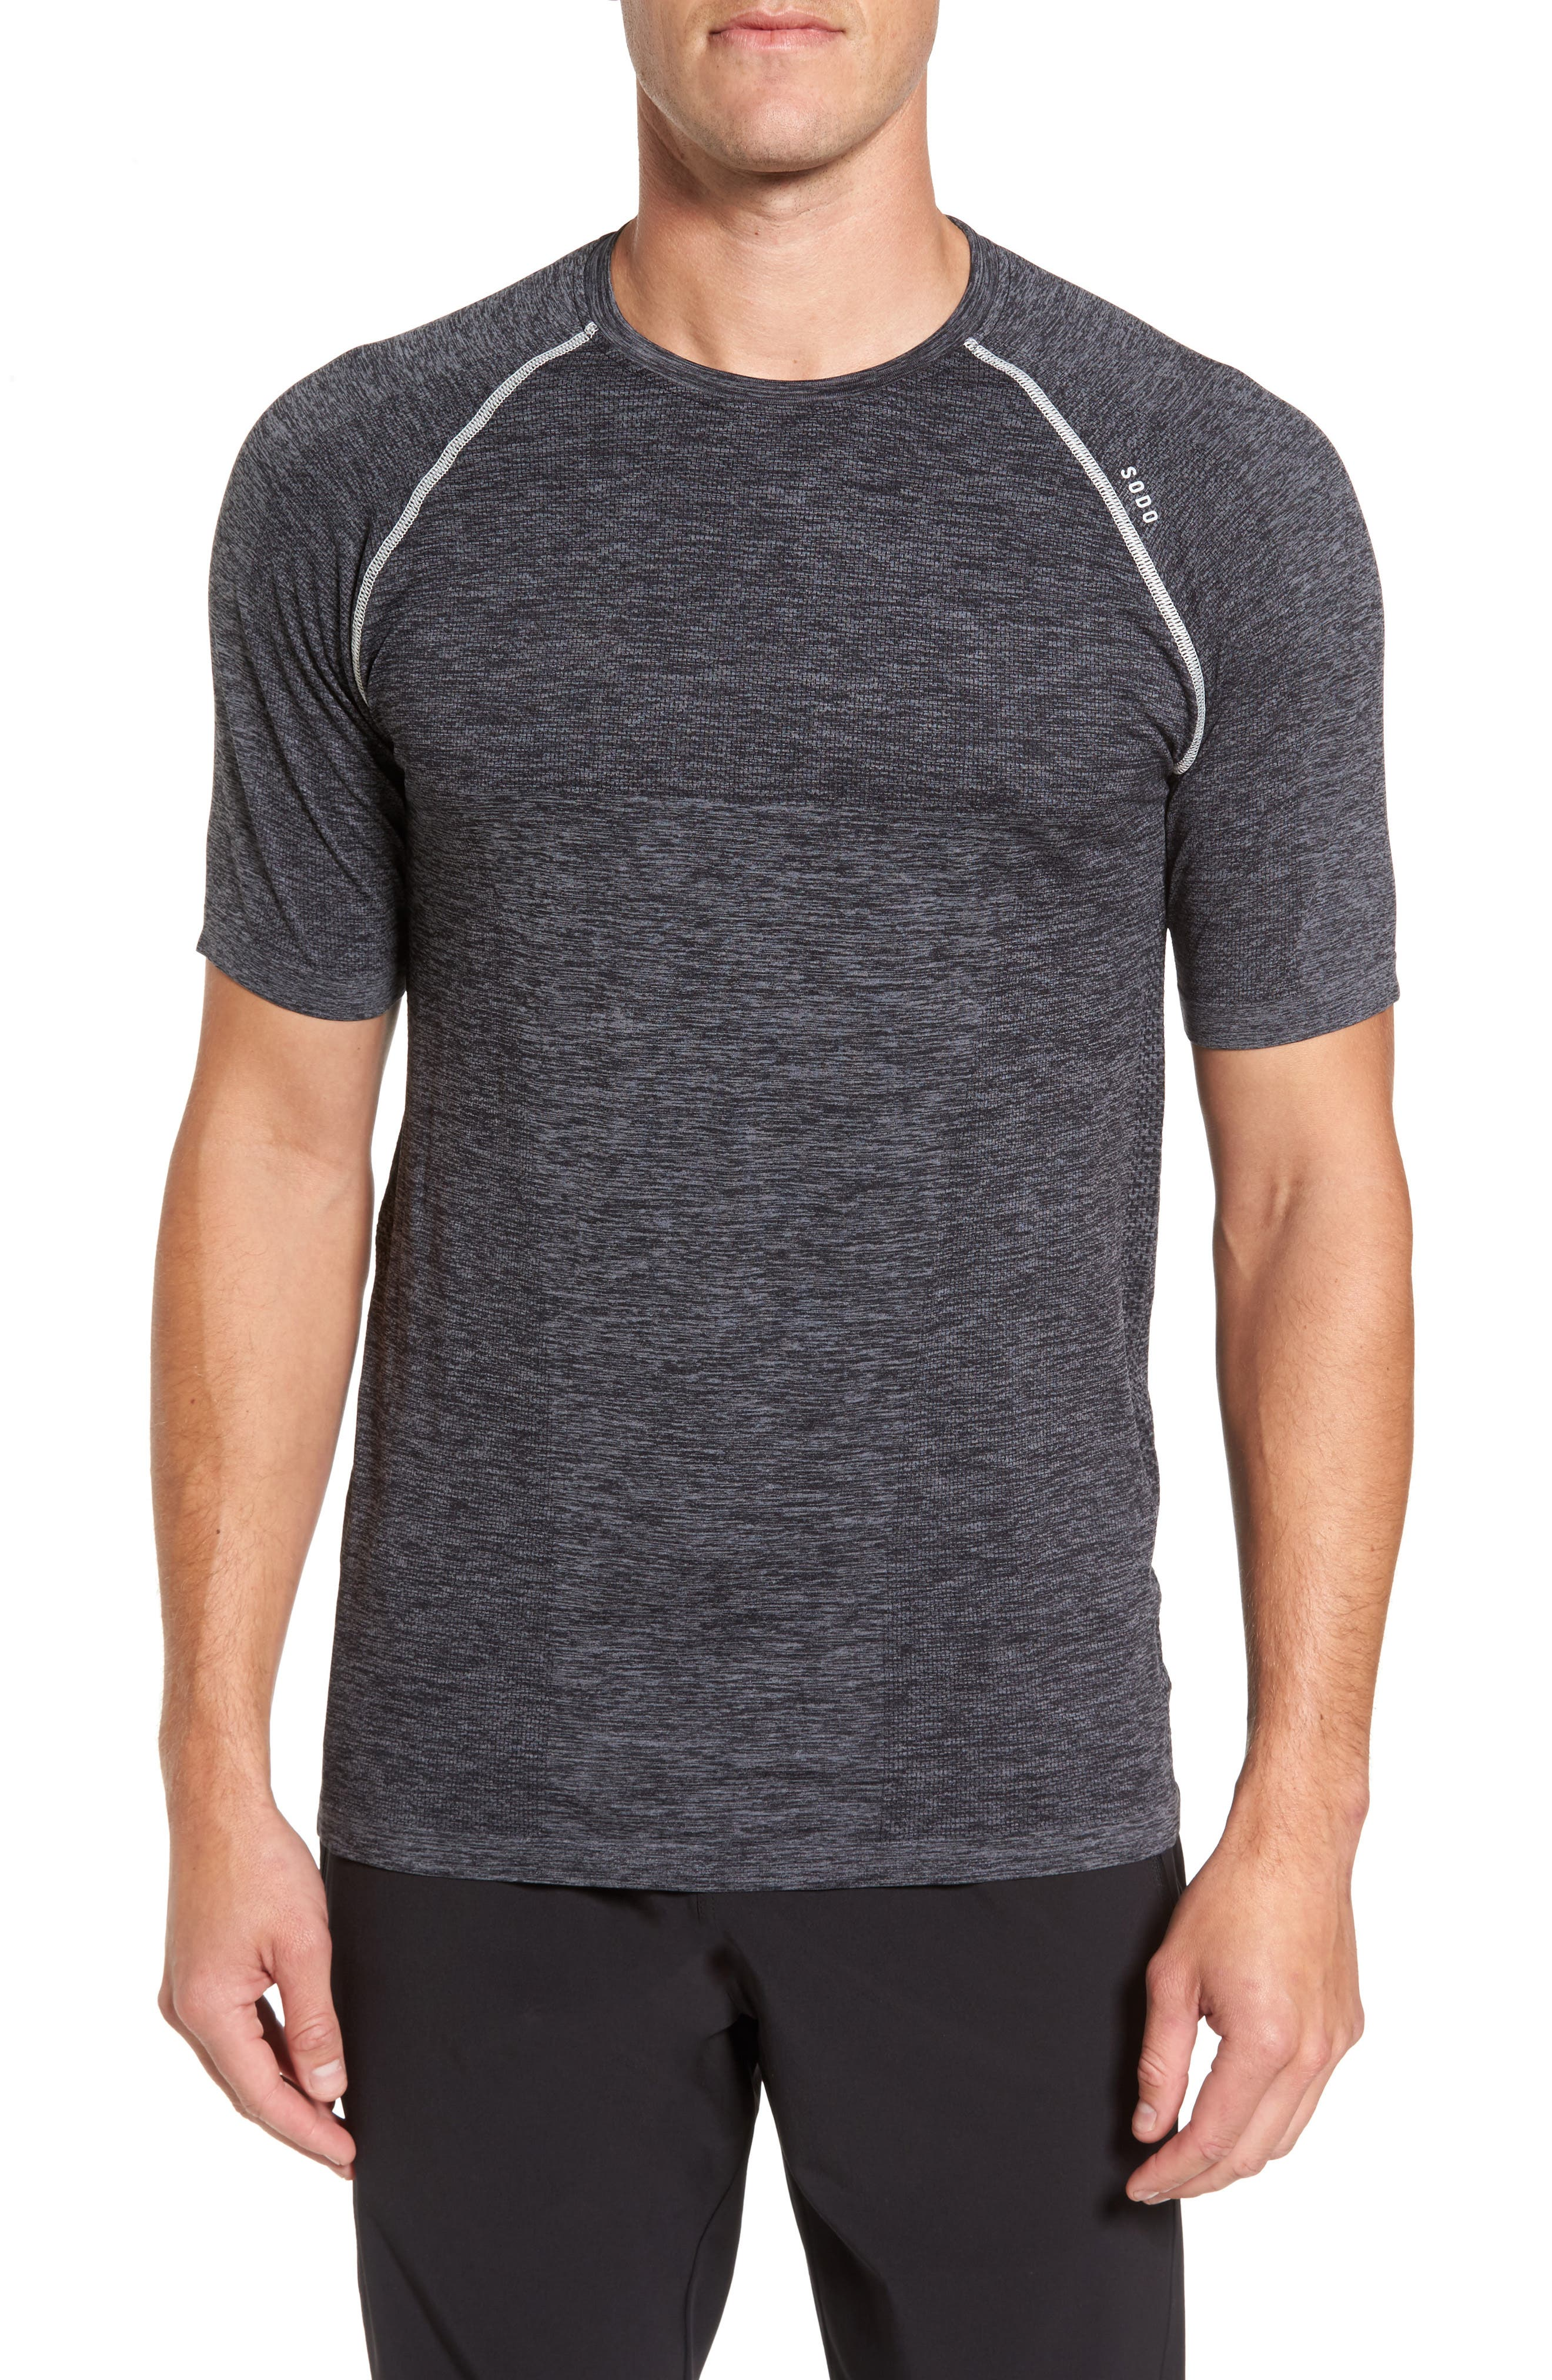 Alternate Image 1 Selected - SODO Seamless Crewneck Performance T-Shirt